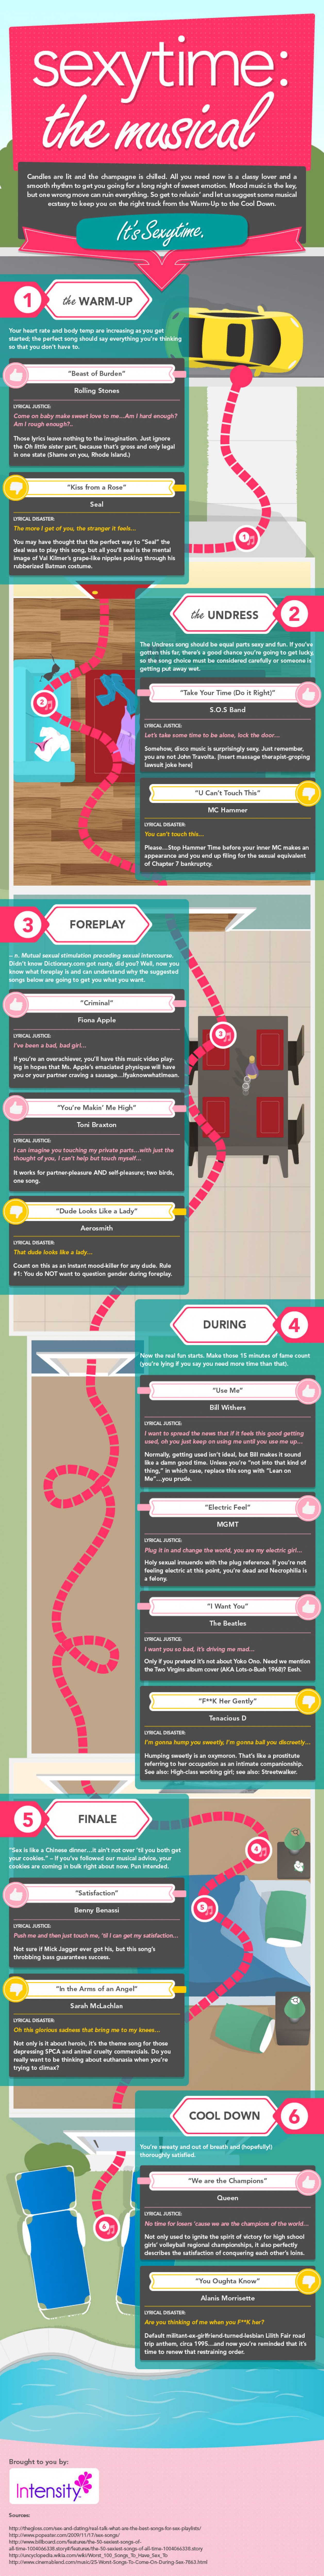 Sexytime: The Musical Infographic